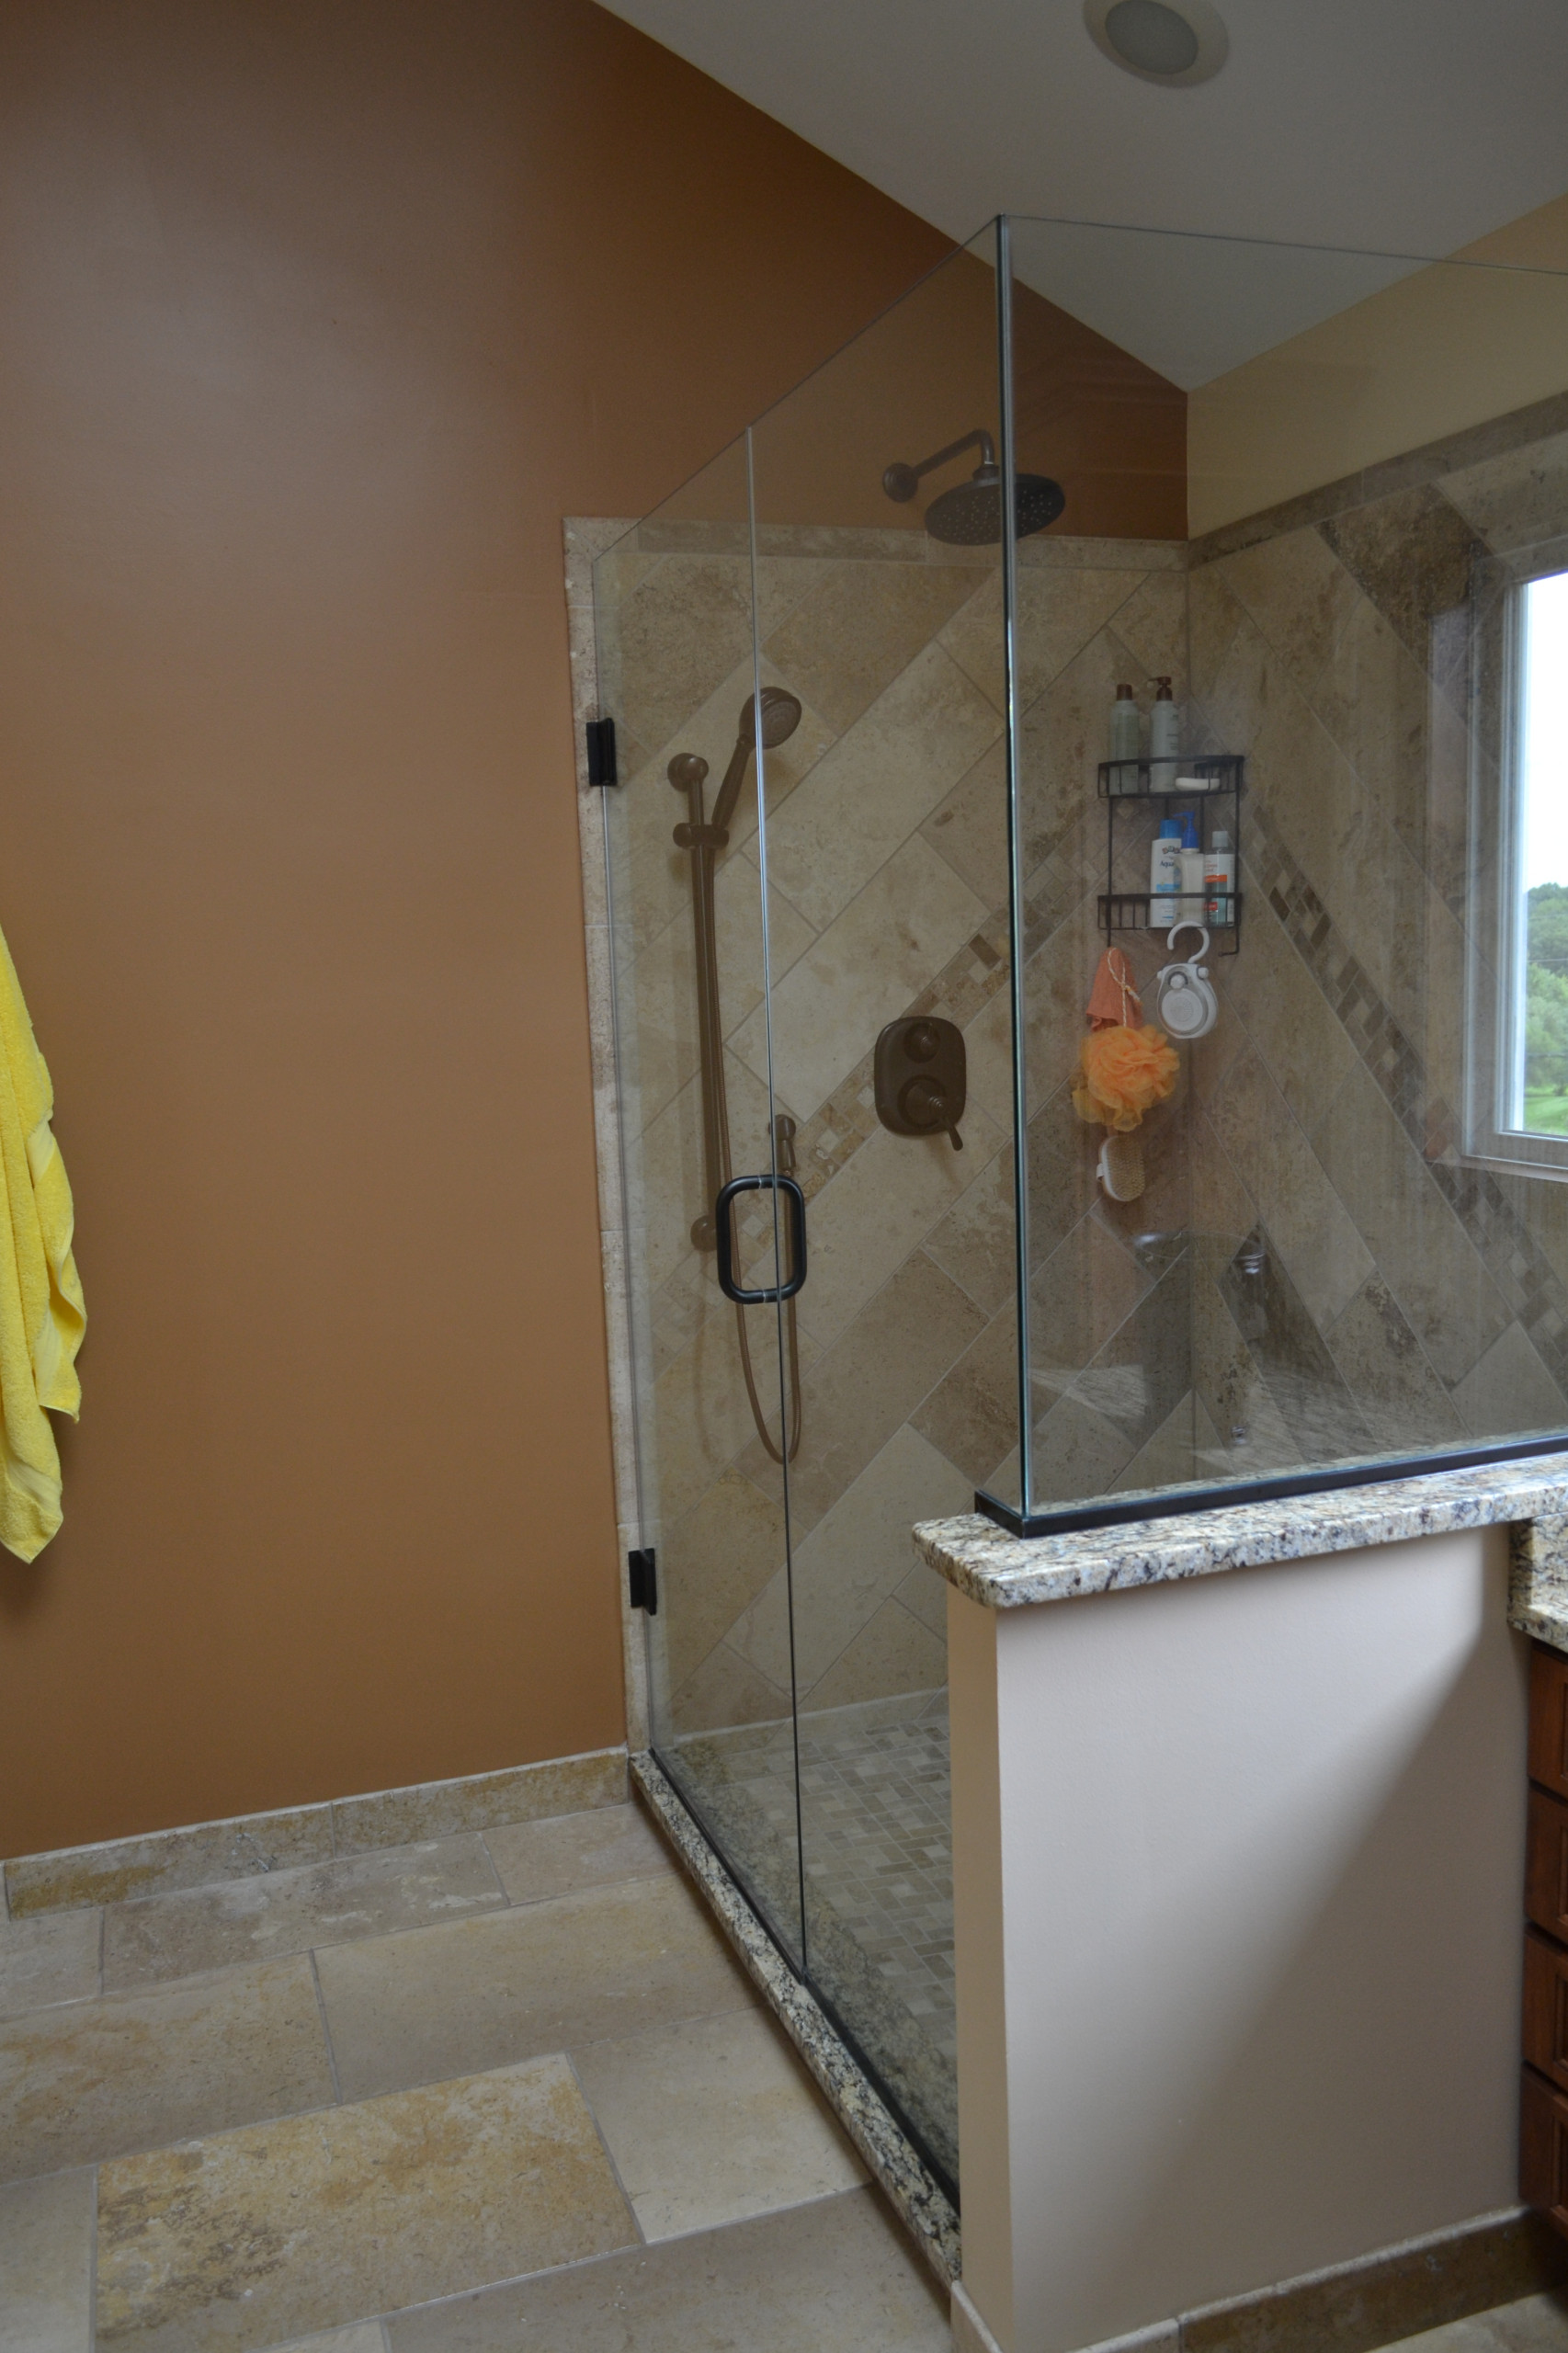 ORB shower fixtures